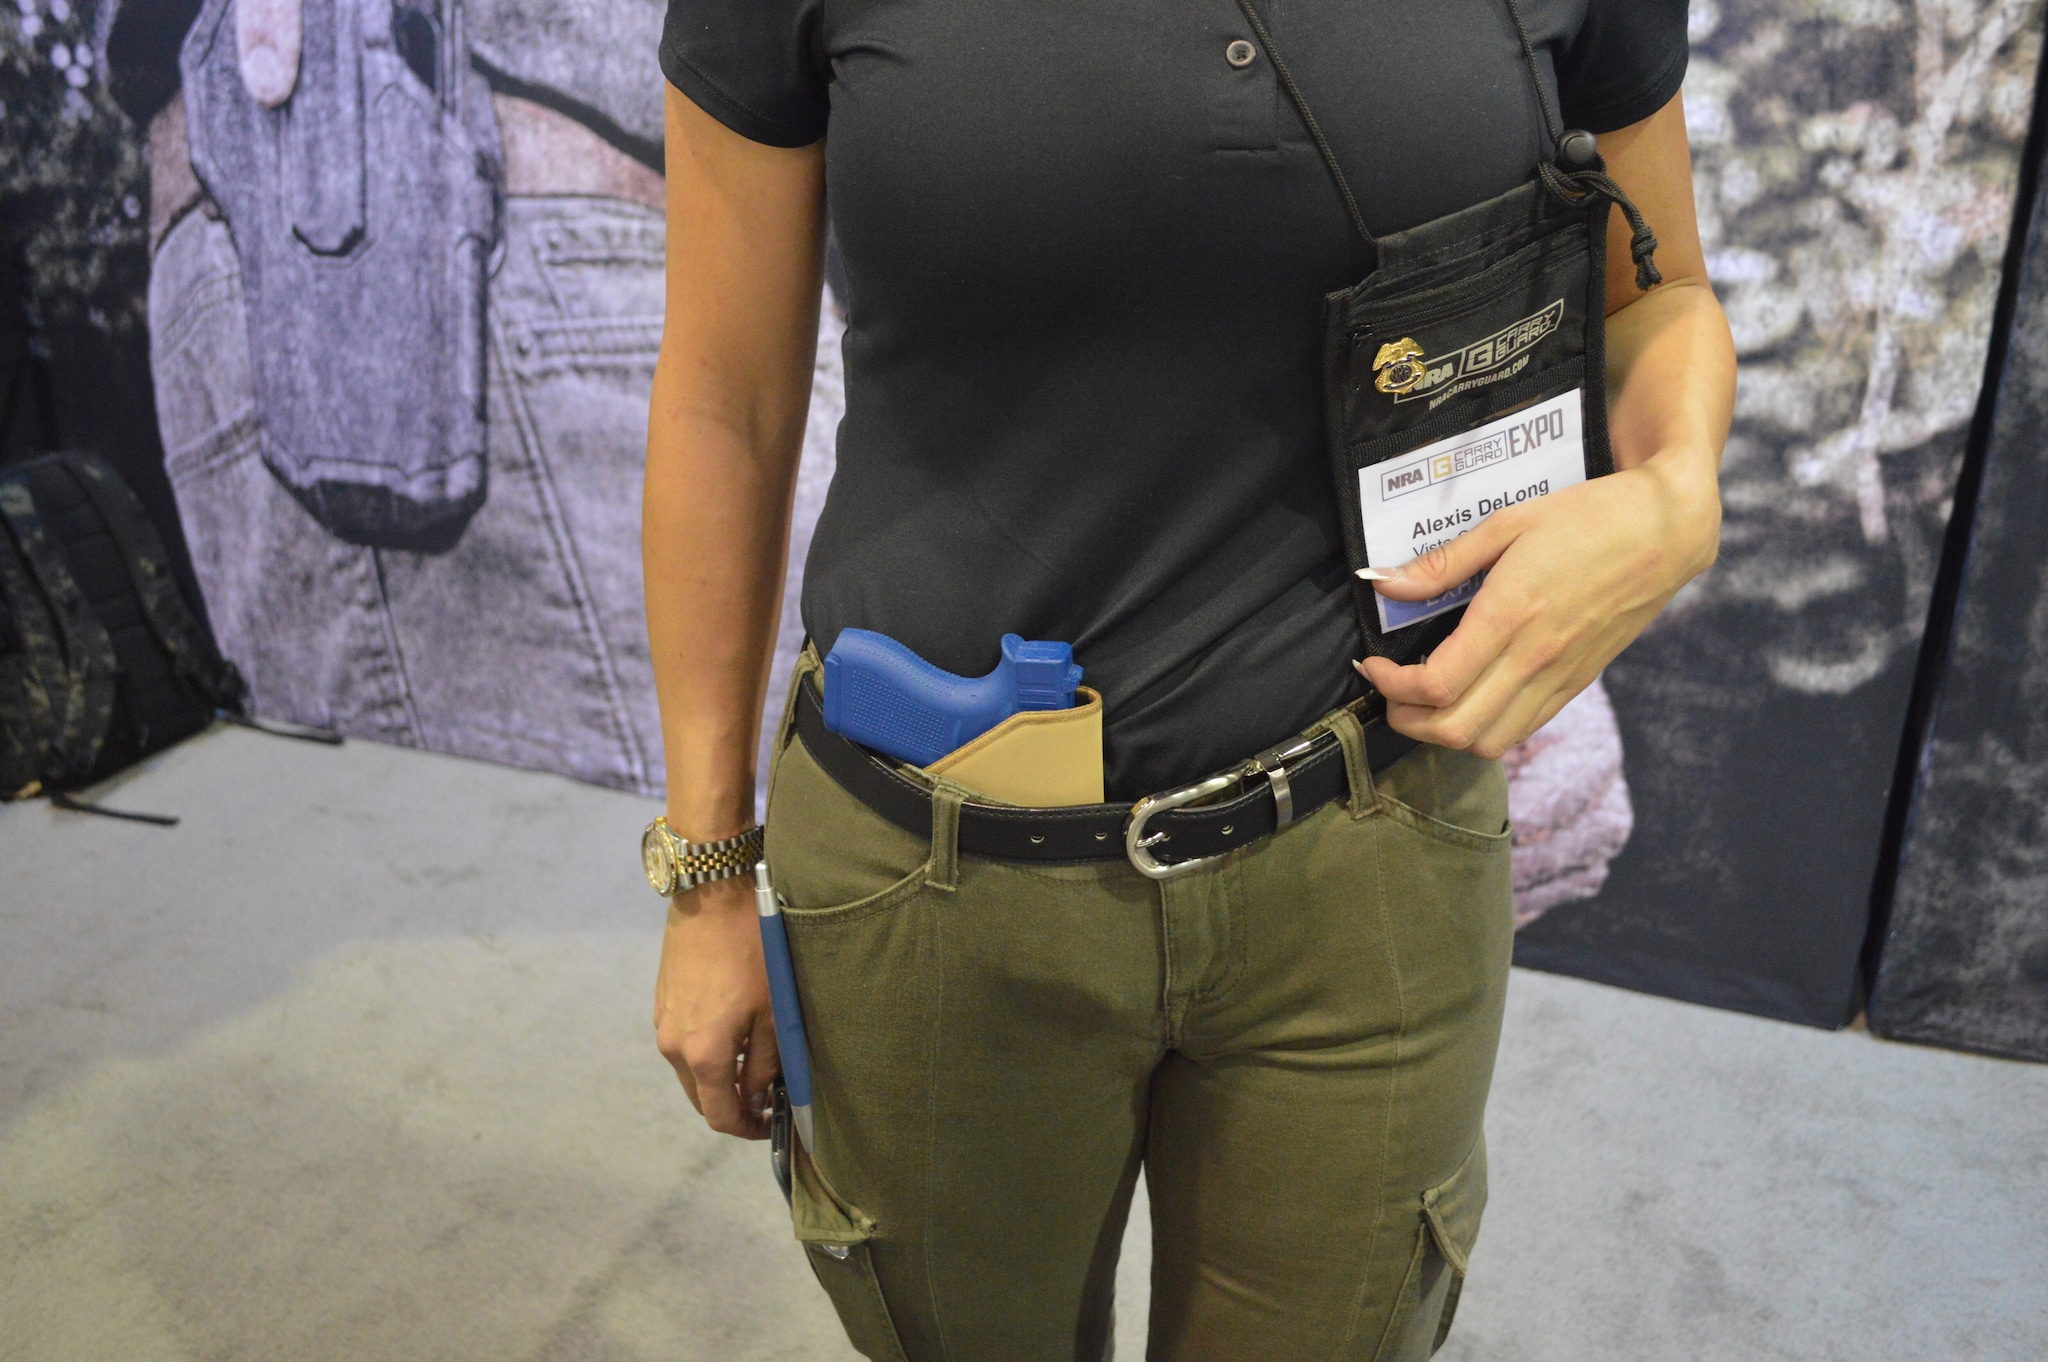 Alexis with Vista Outdoors models a Blackhawk! in-the-pocket holster with such grippy material that it stays put inside-the-waistband as well. (Photo: Kristin Alberts/Guns.com)